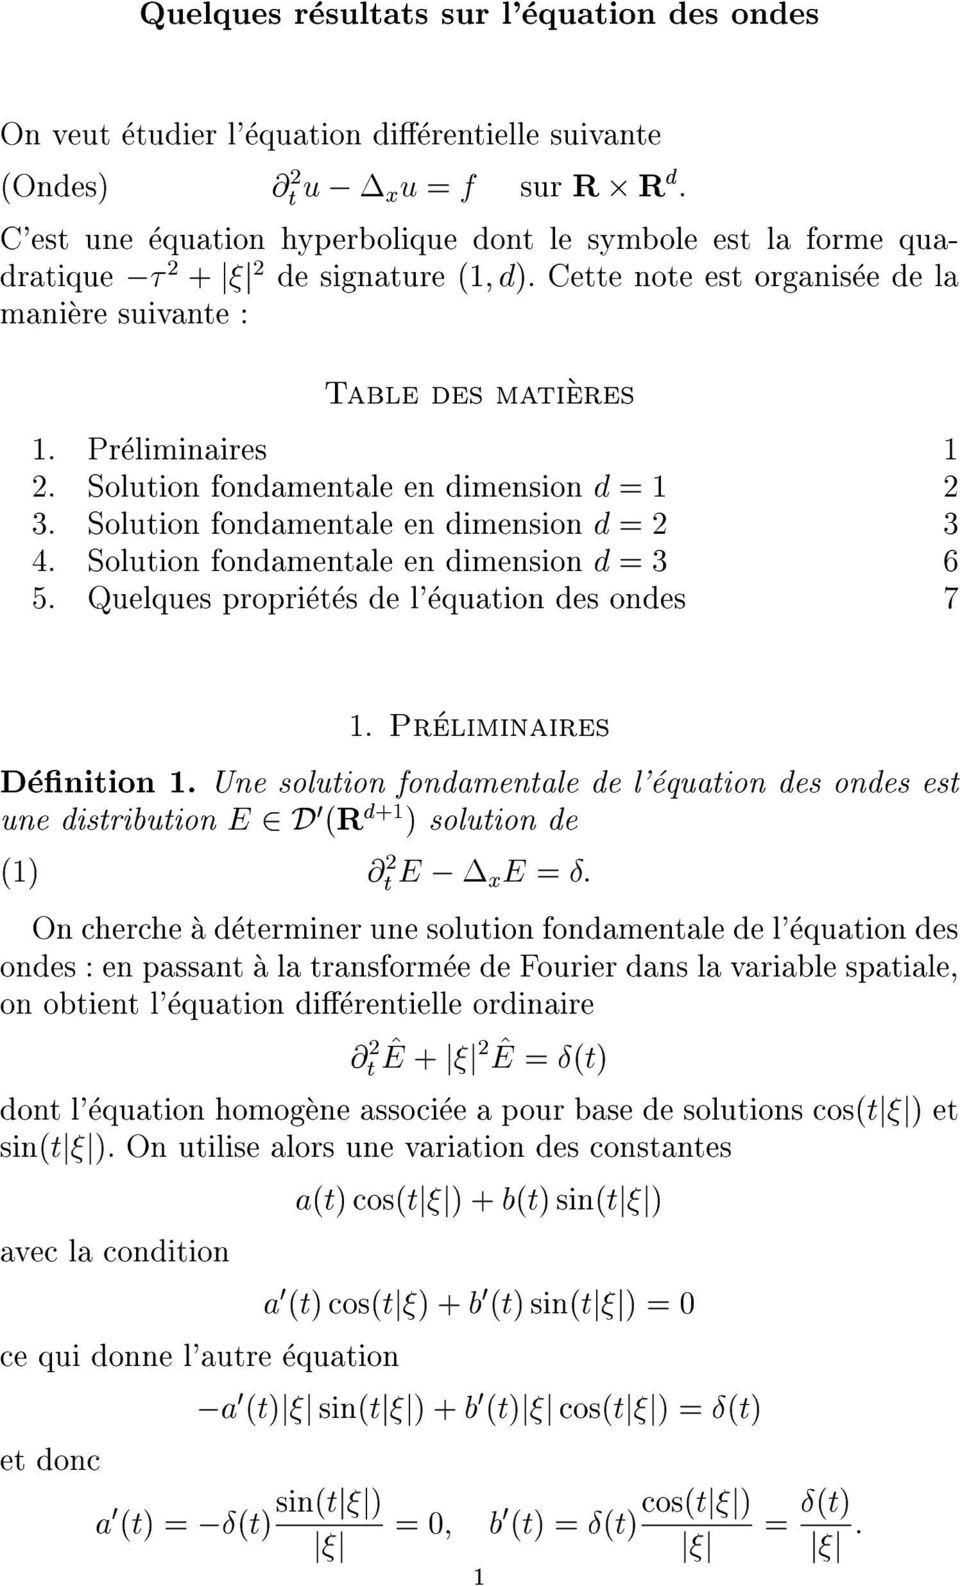 Solutionfondamentaleendimension d=3 3 5. Quelquesproprietesdel'equationdesondes 76. Preliminaires Denition unedistribution.